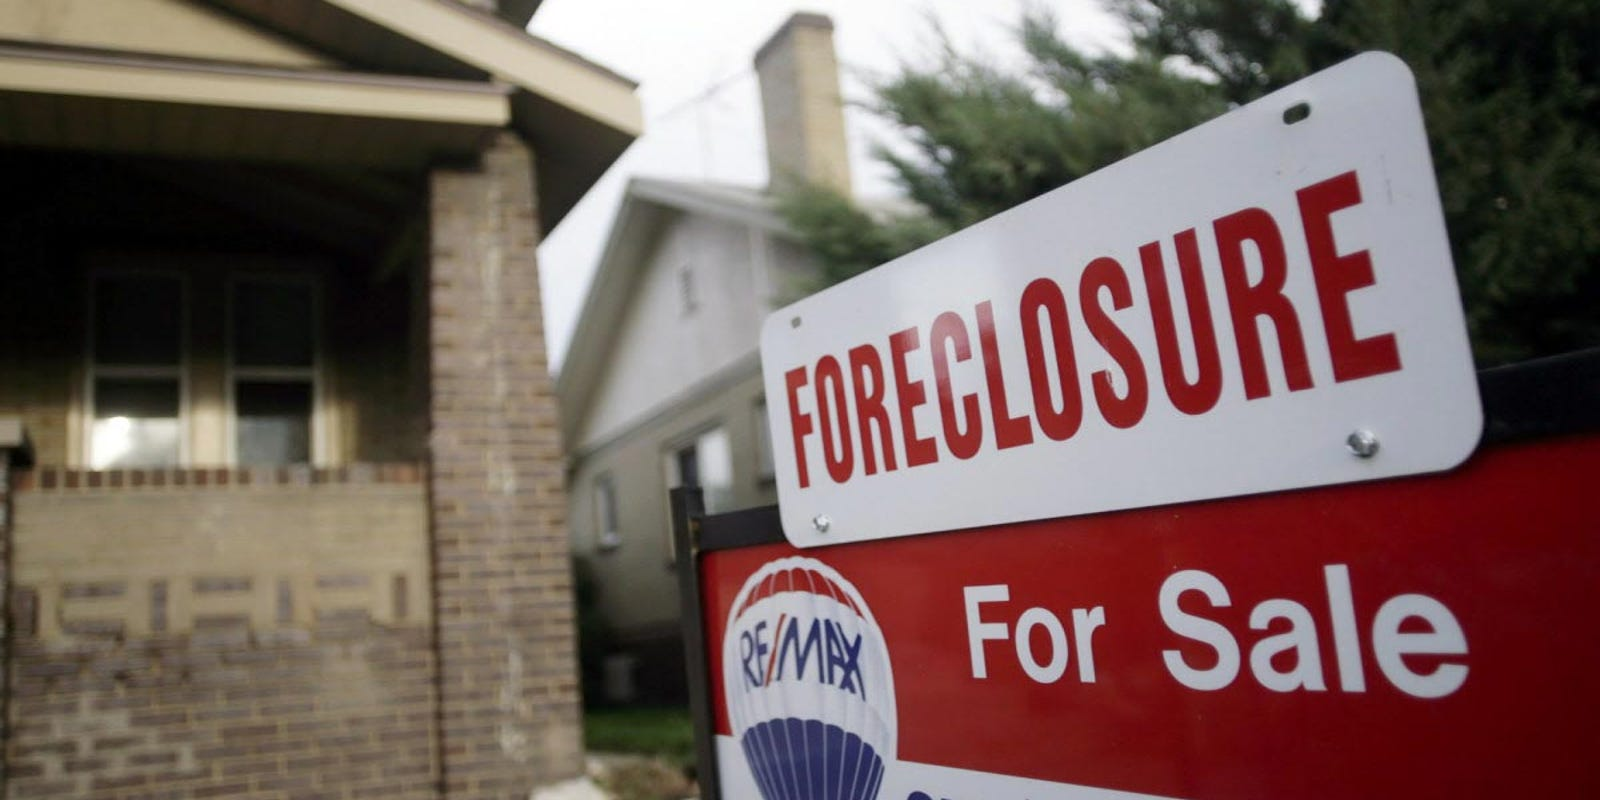 New Jersey had the country's highest real estate foreclosure rate — again